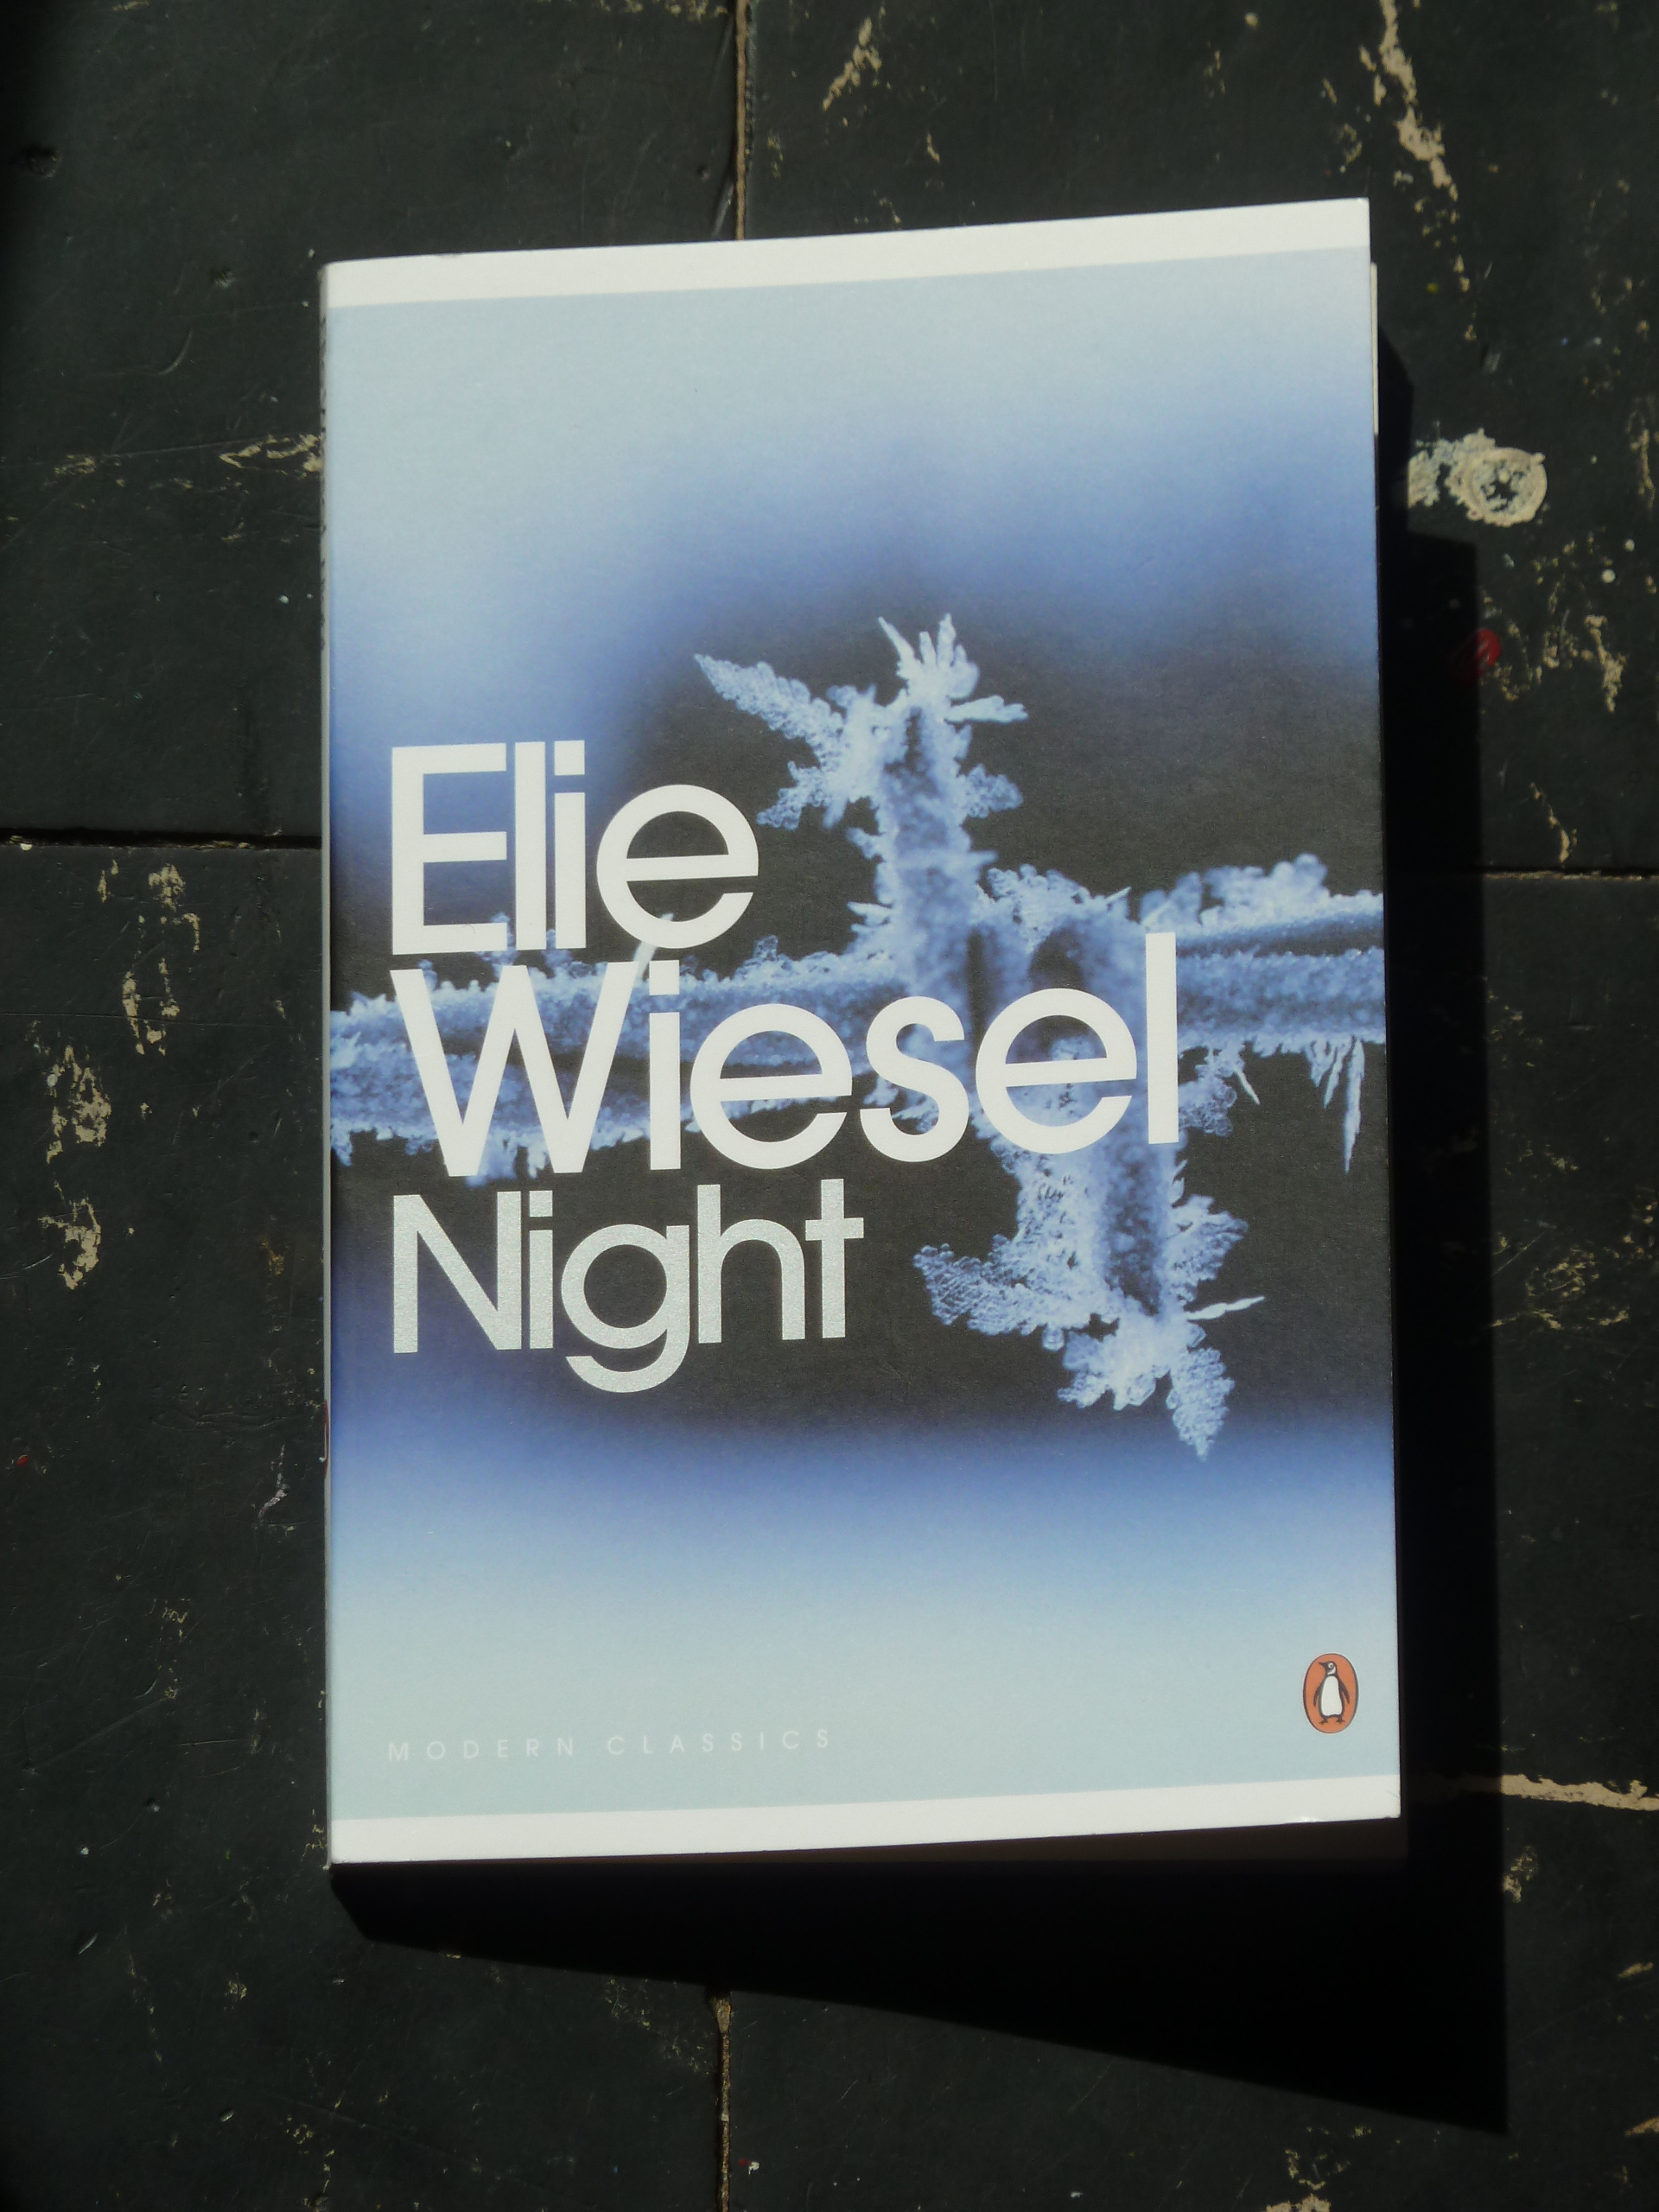 night elie wiesel essay loss faith